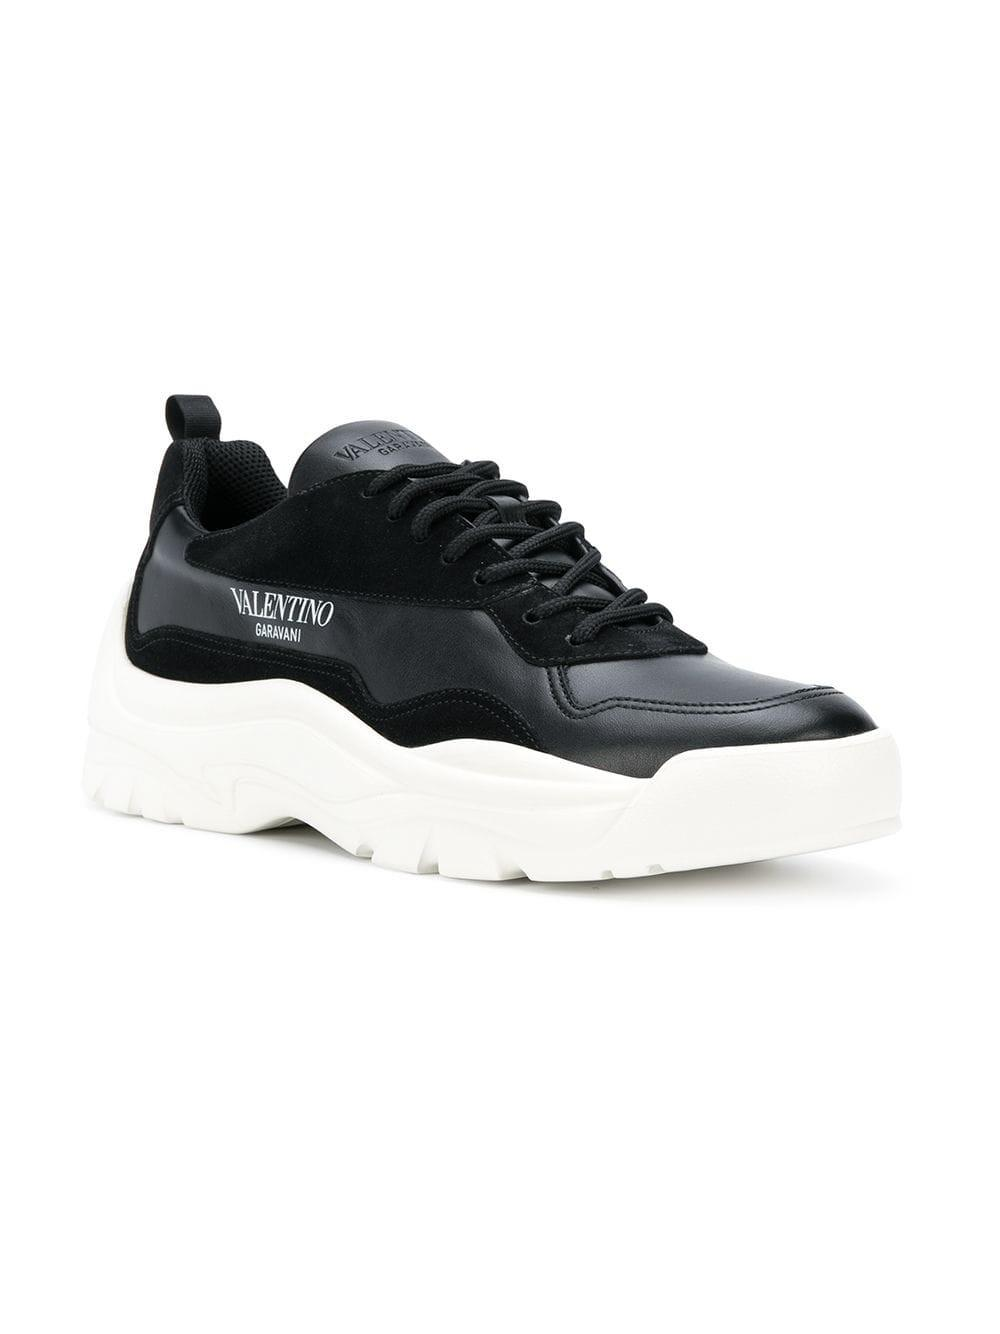 abb16be95a0f Valentino Low Top Sneakers in Black for Men - Save 40% - Lyst